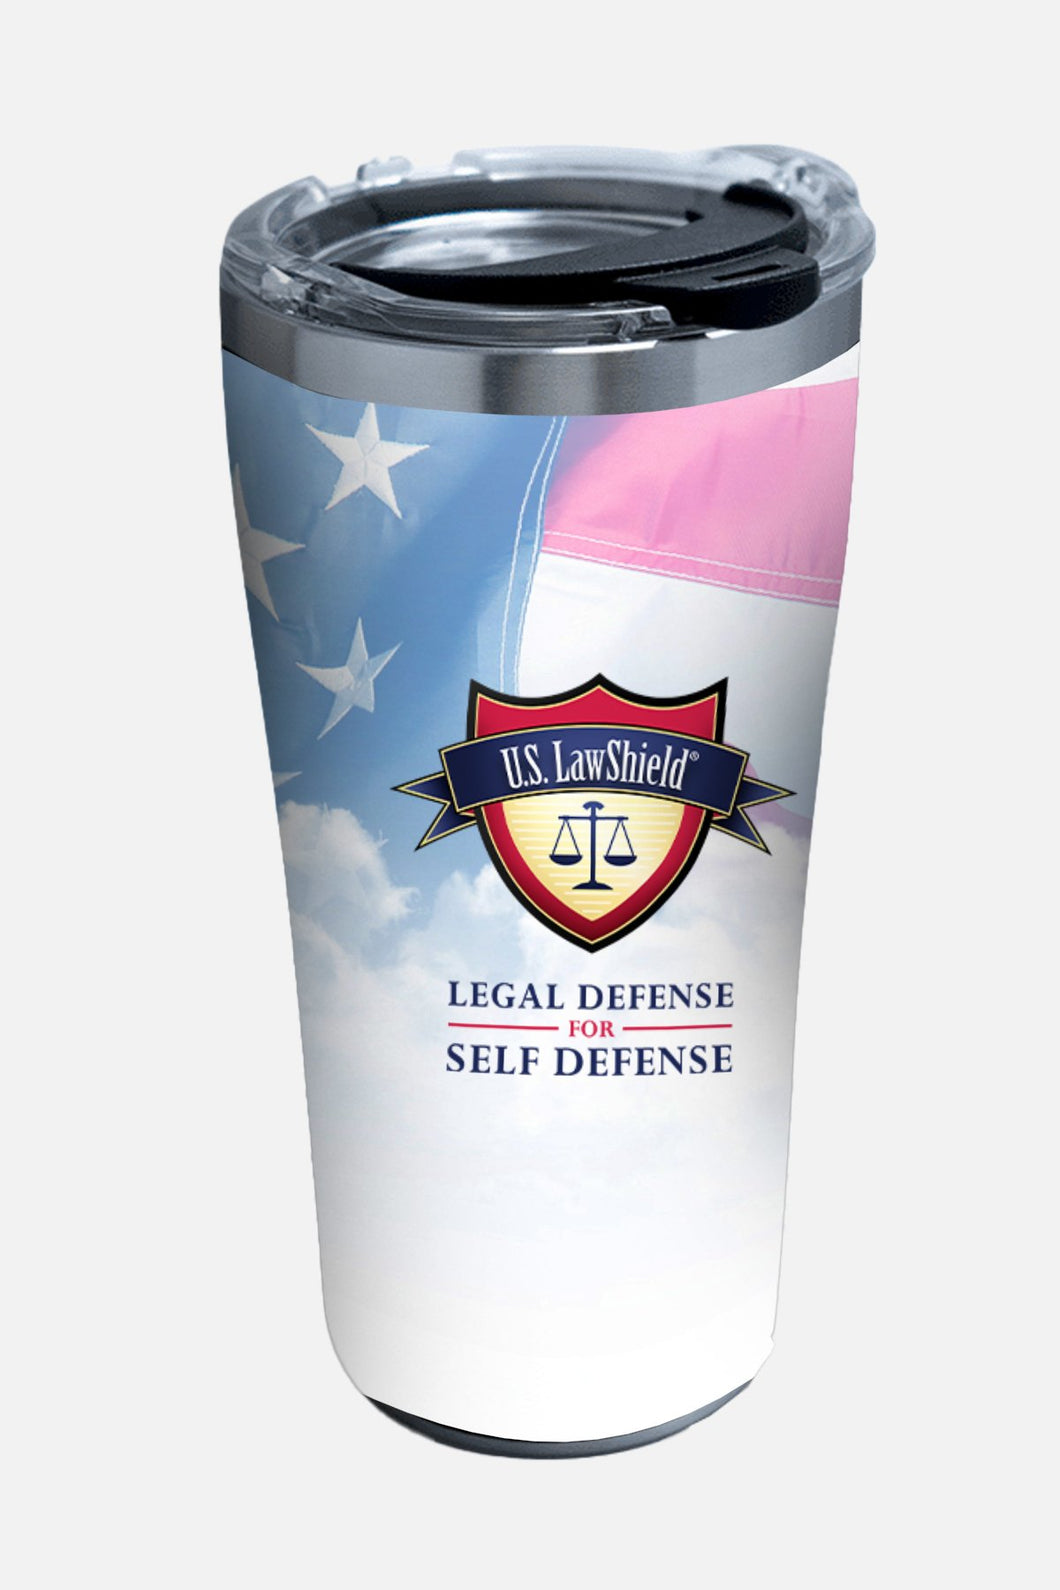 20 oz U.S. LawShield Stainless Tervis ® tumbler with lid